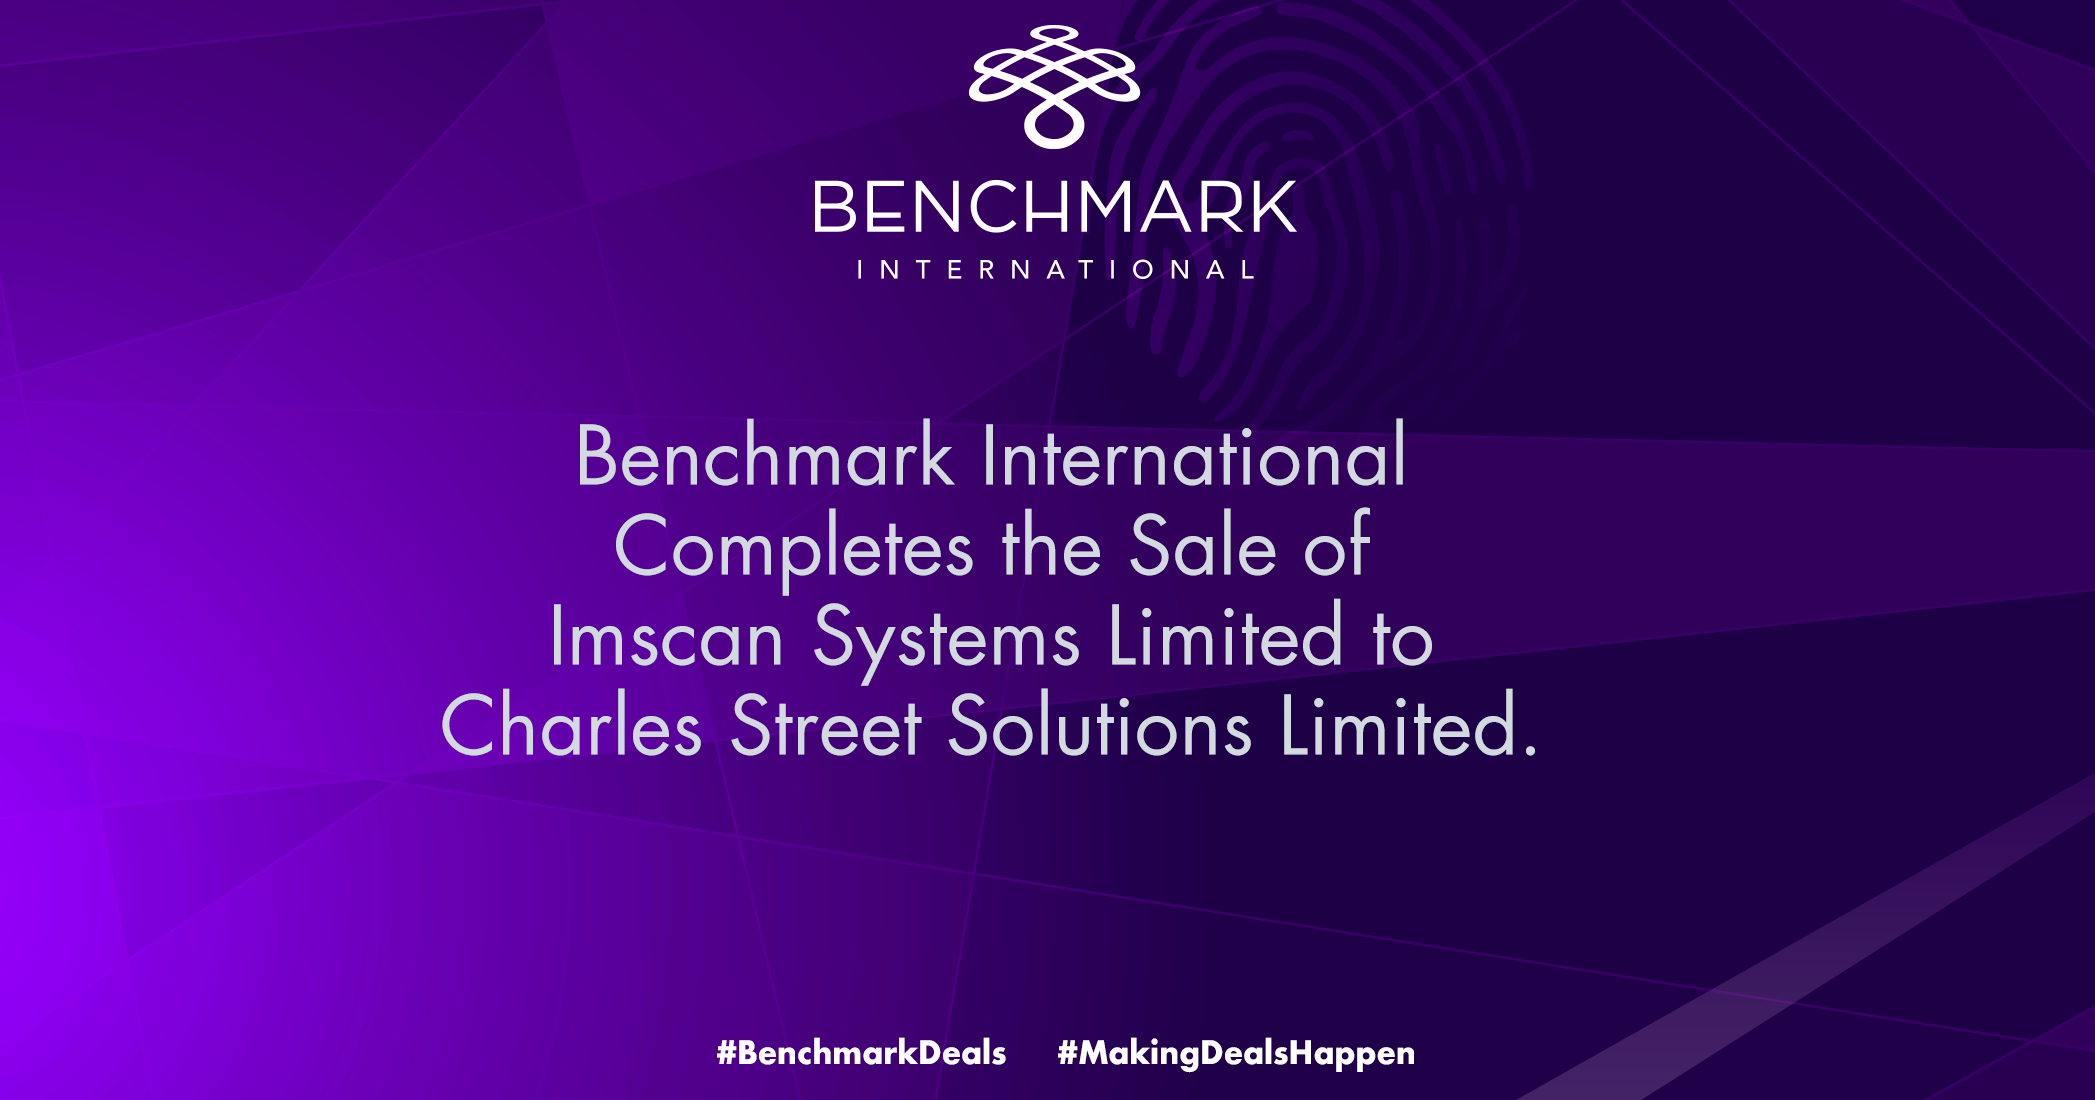 Benchmark International Completes the Sale of Imscan Systems Limited to Charles Street Solutions Limited